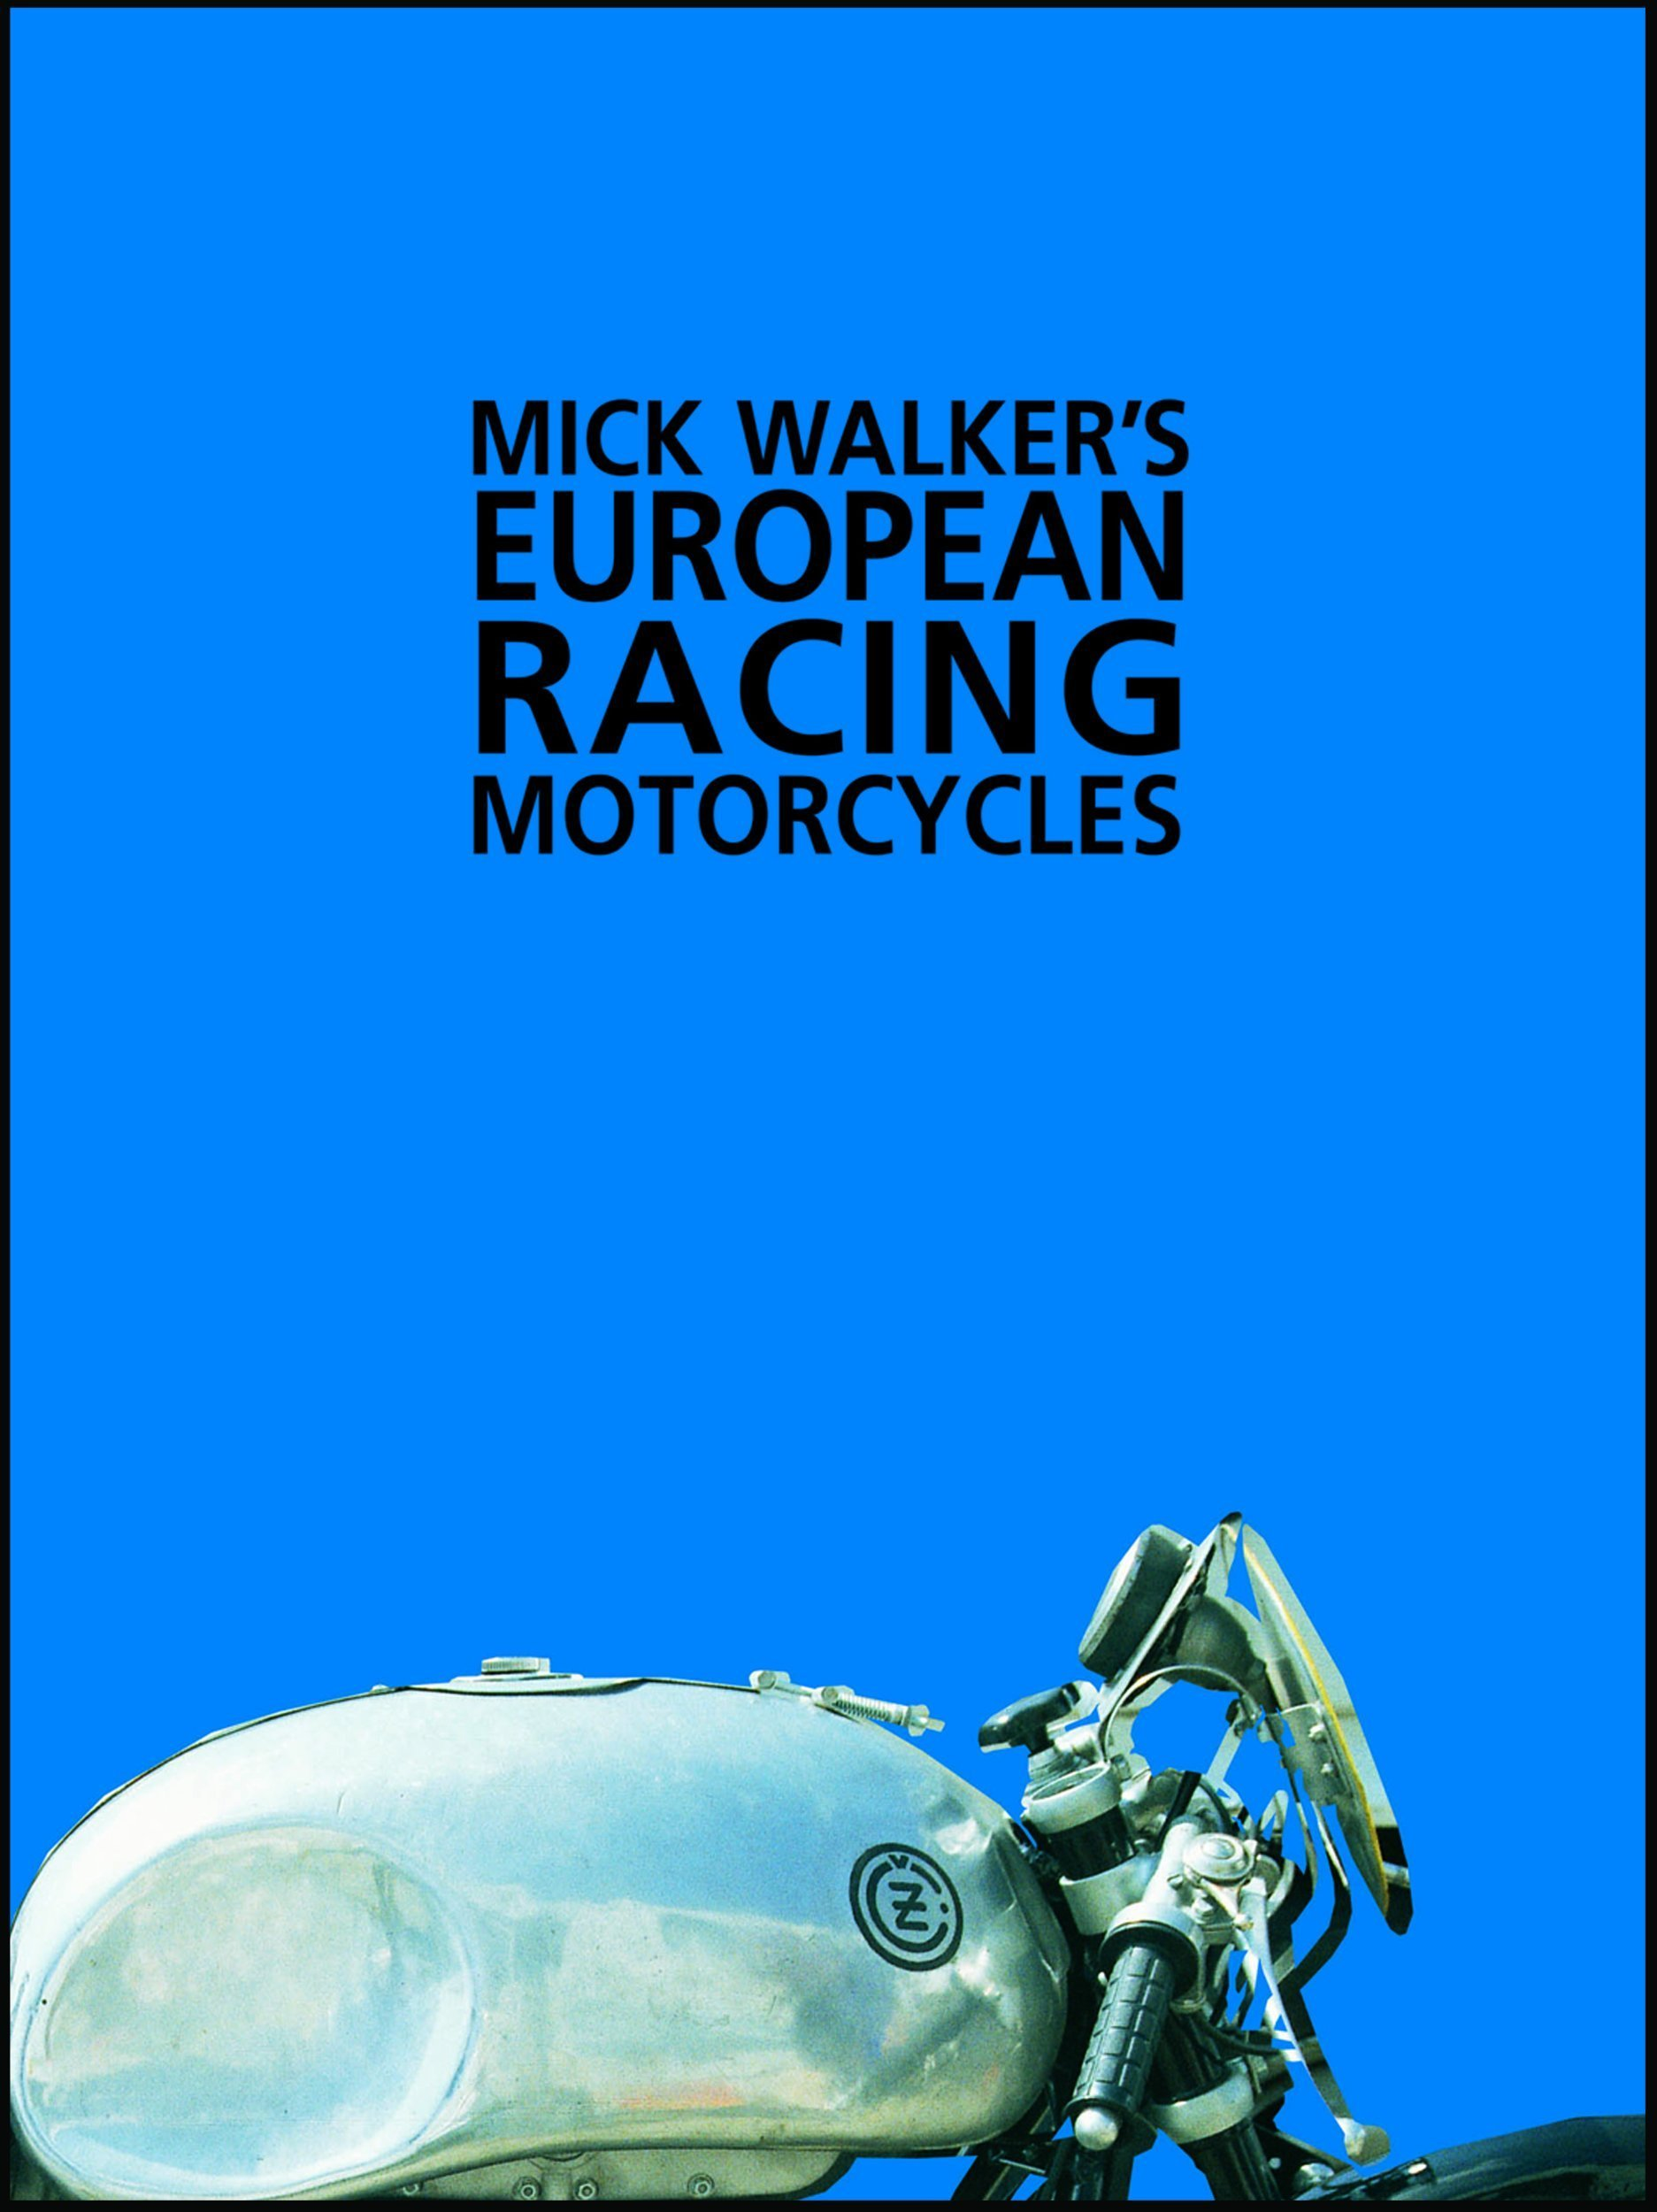 Download Mick Walker's European Racing Motorcycles (Redline Motorcycles)